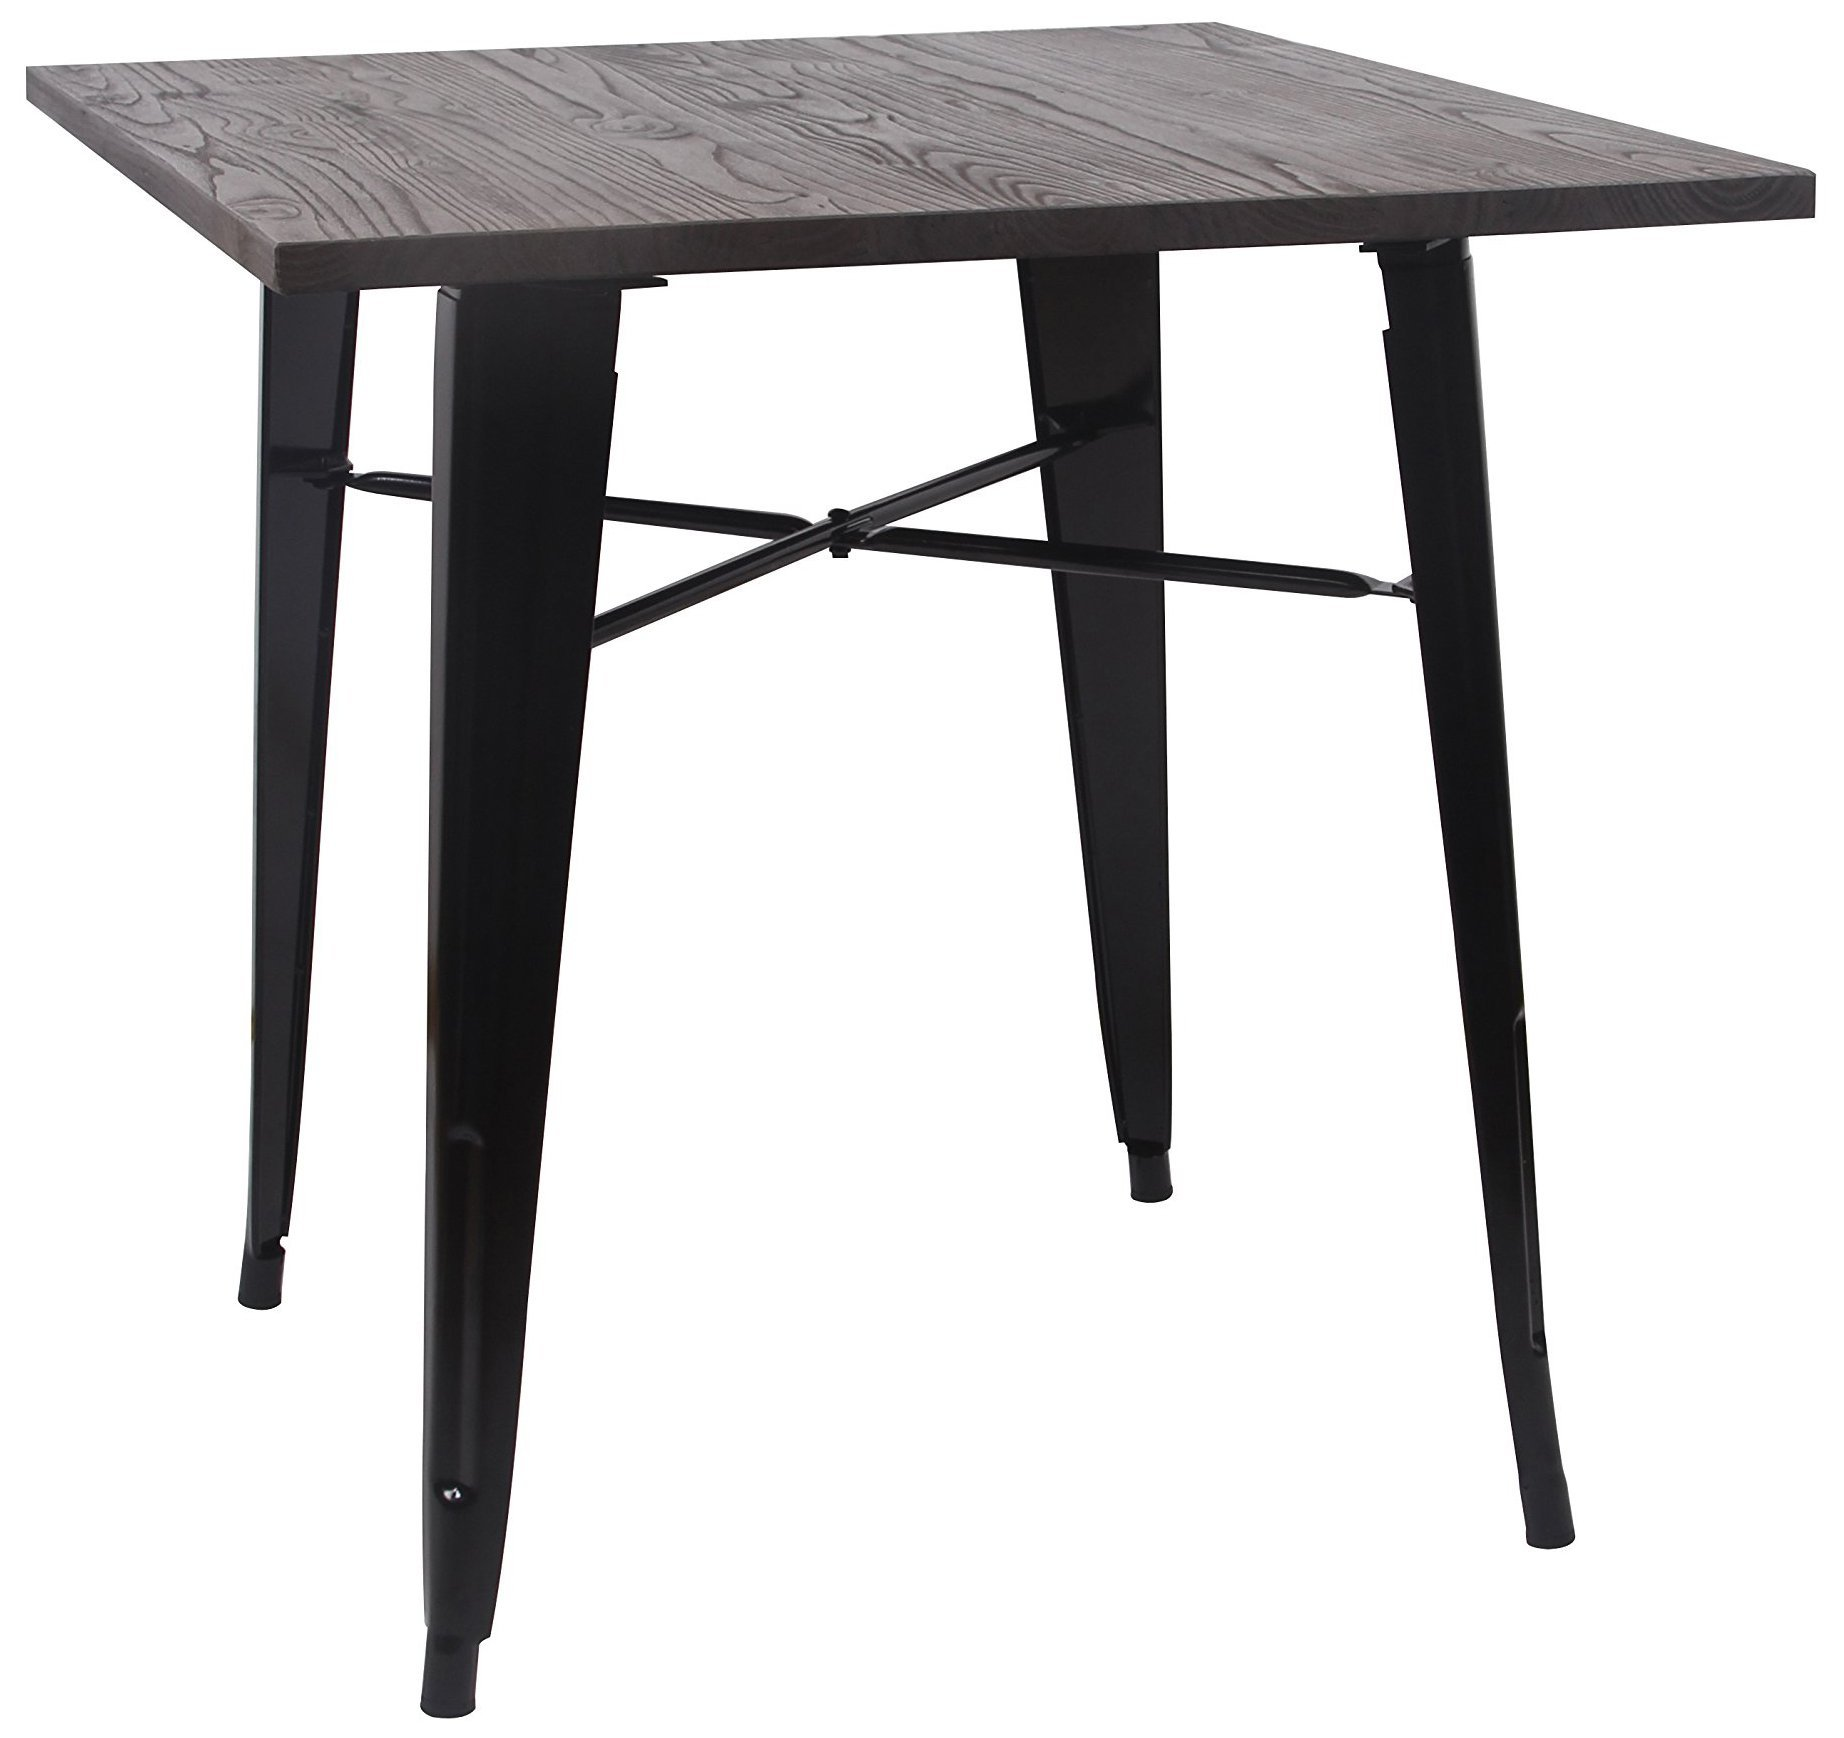 GIA Tolix style Dining/gaming metal table - Apartment size - Wood top - Metal leg-Easy assemble -Industrial appearance